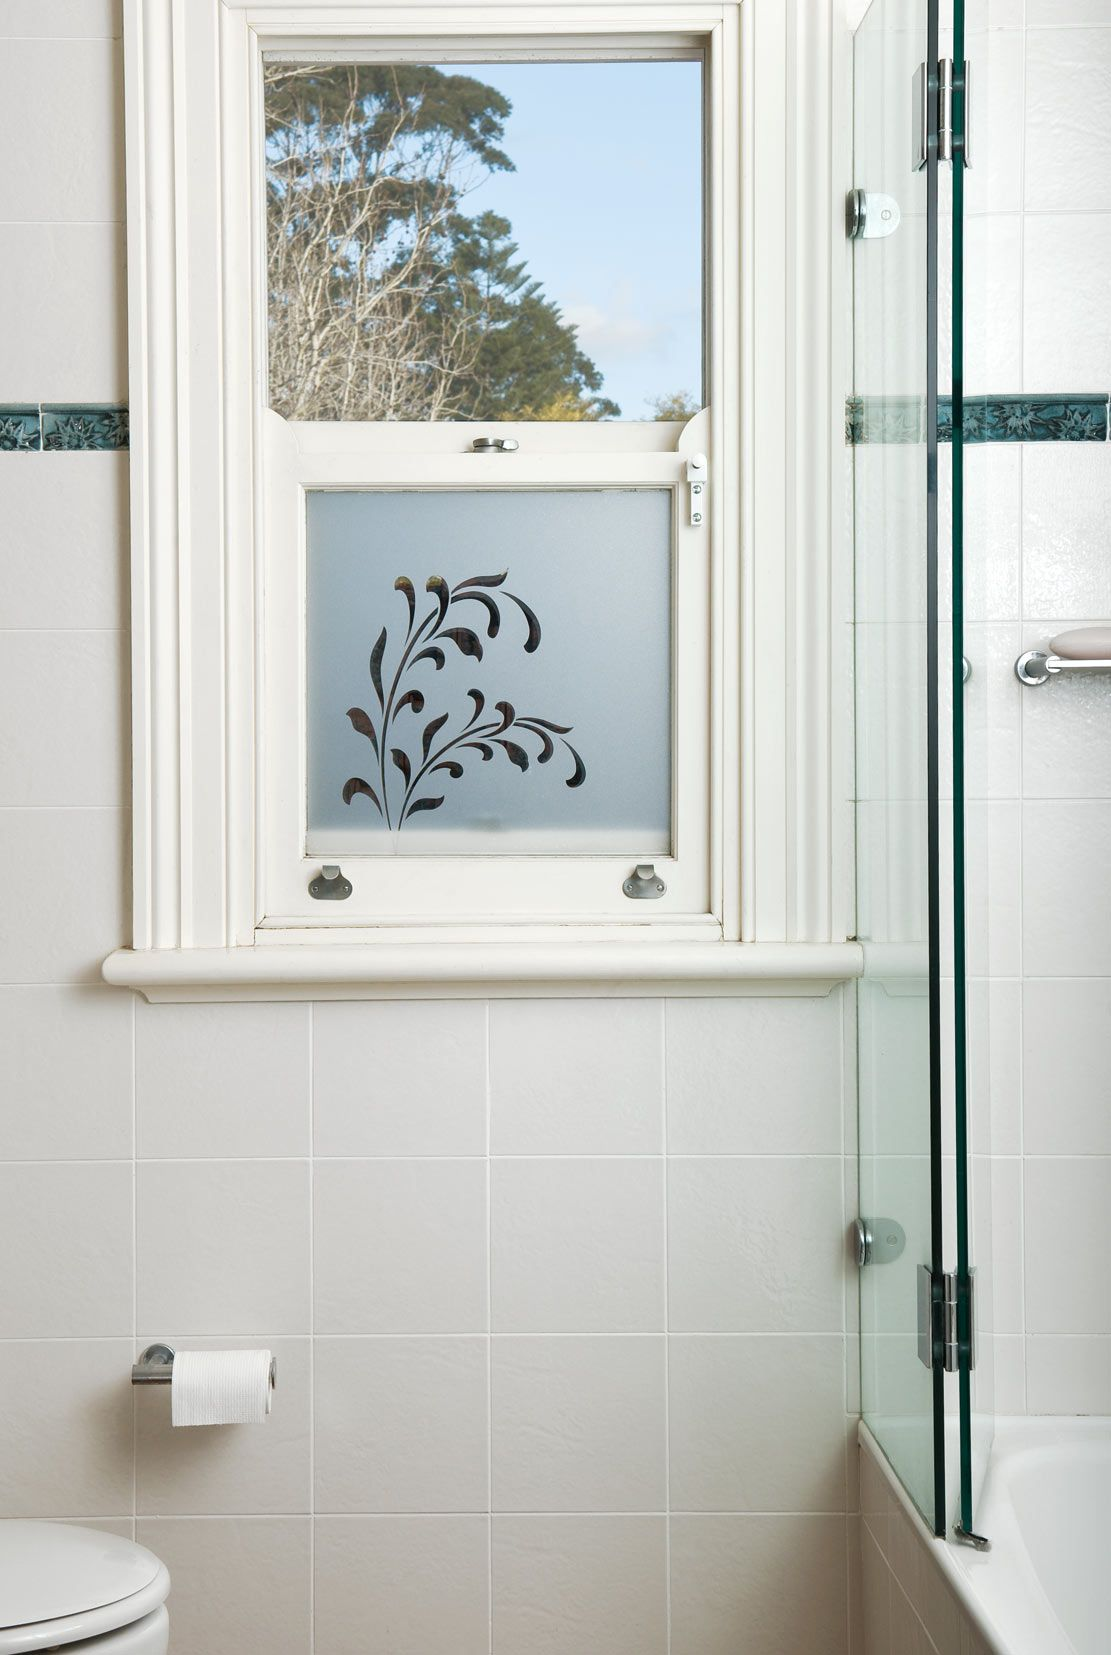 Custom made frosted window film by frost co window film perfect for bathrooms